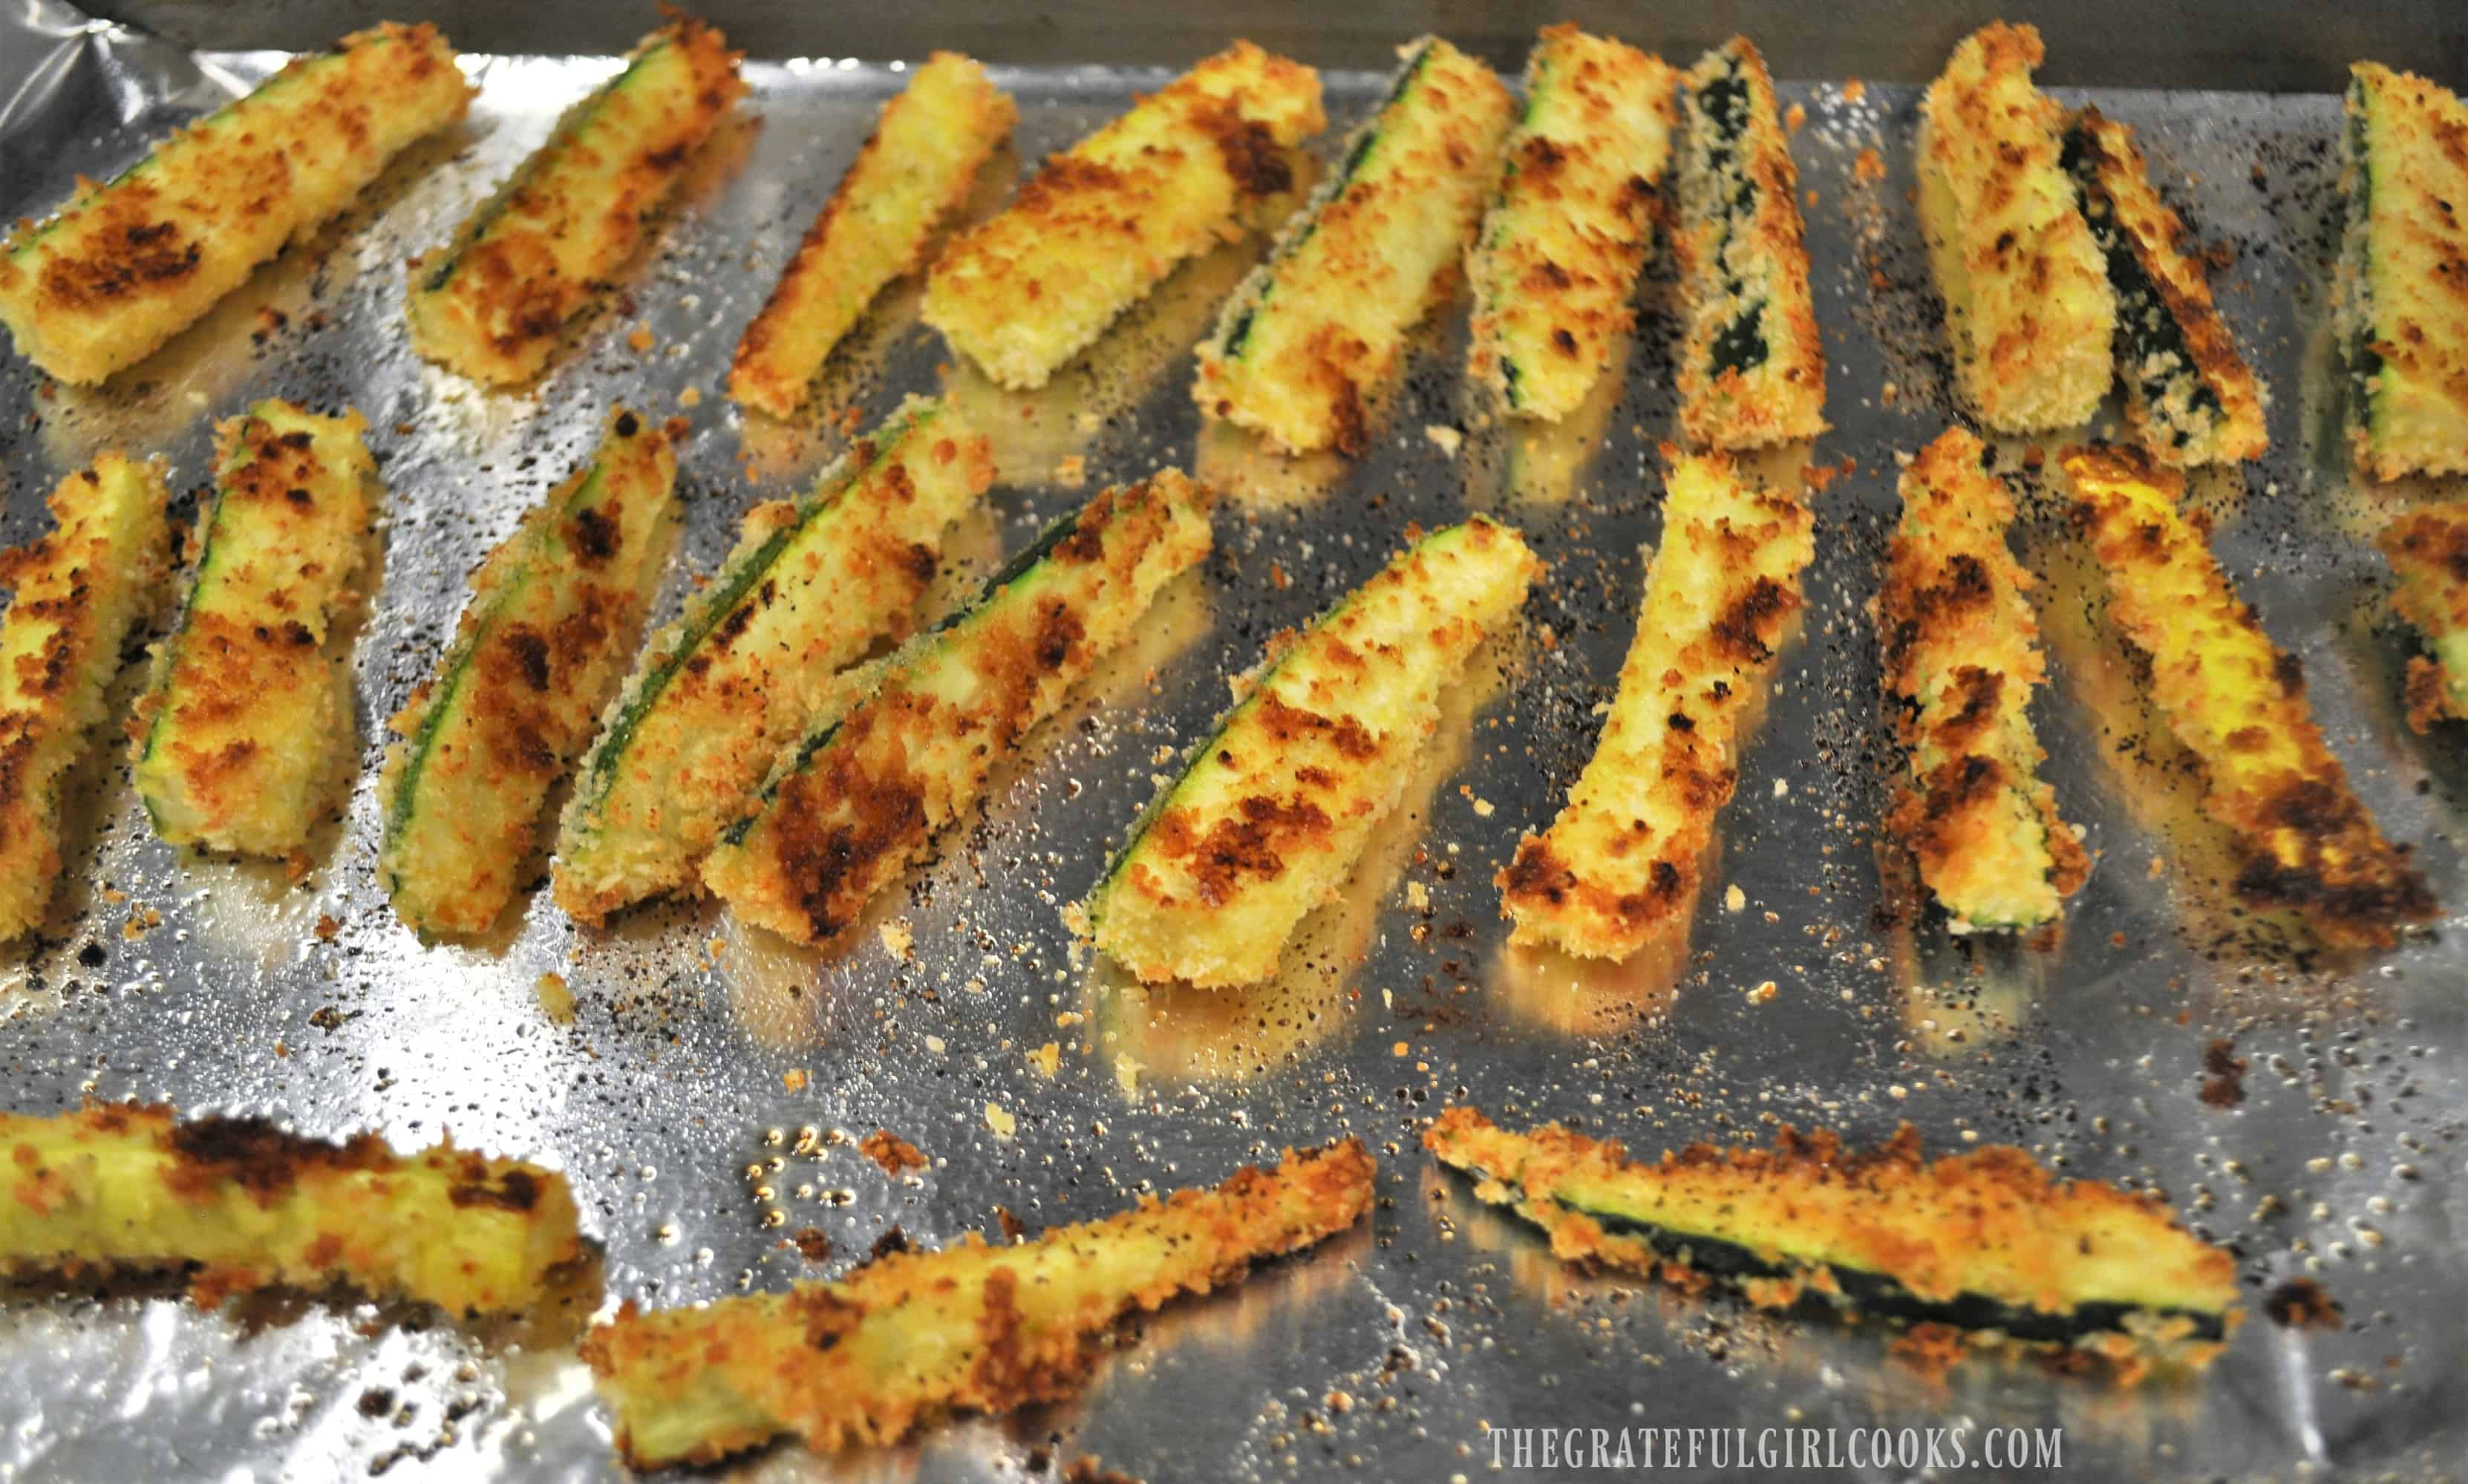 Baked Parmesan Zucchini Fries / The Grateful Girl Cooks!